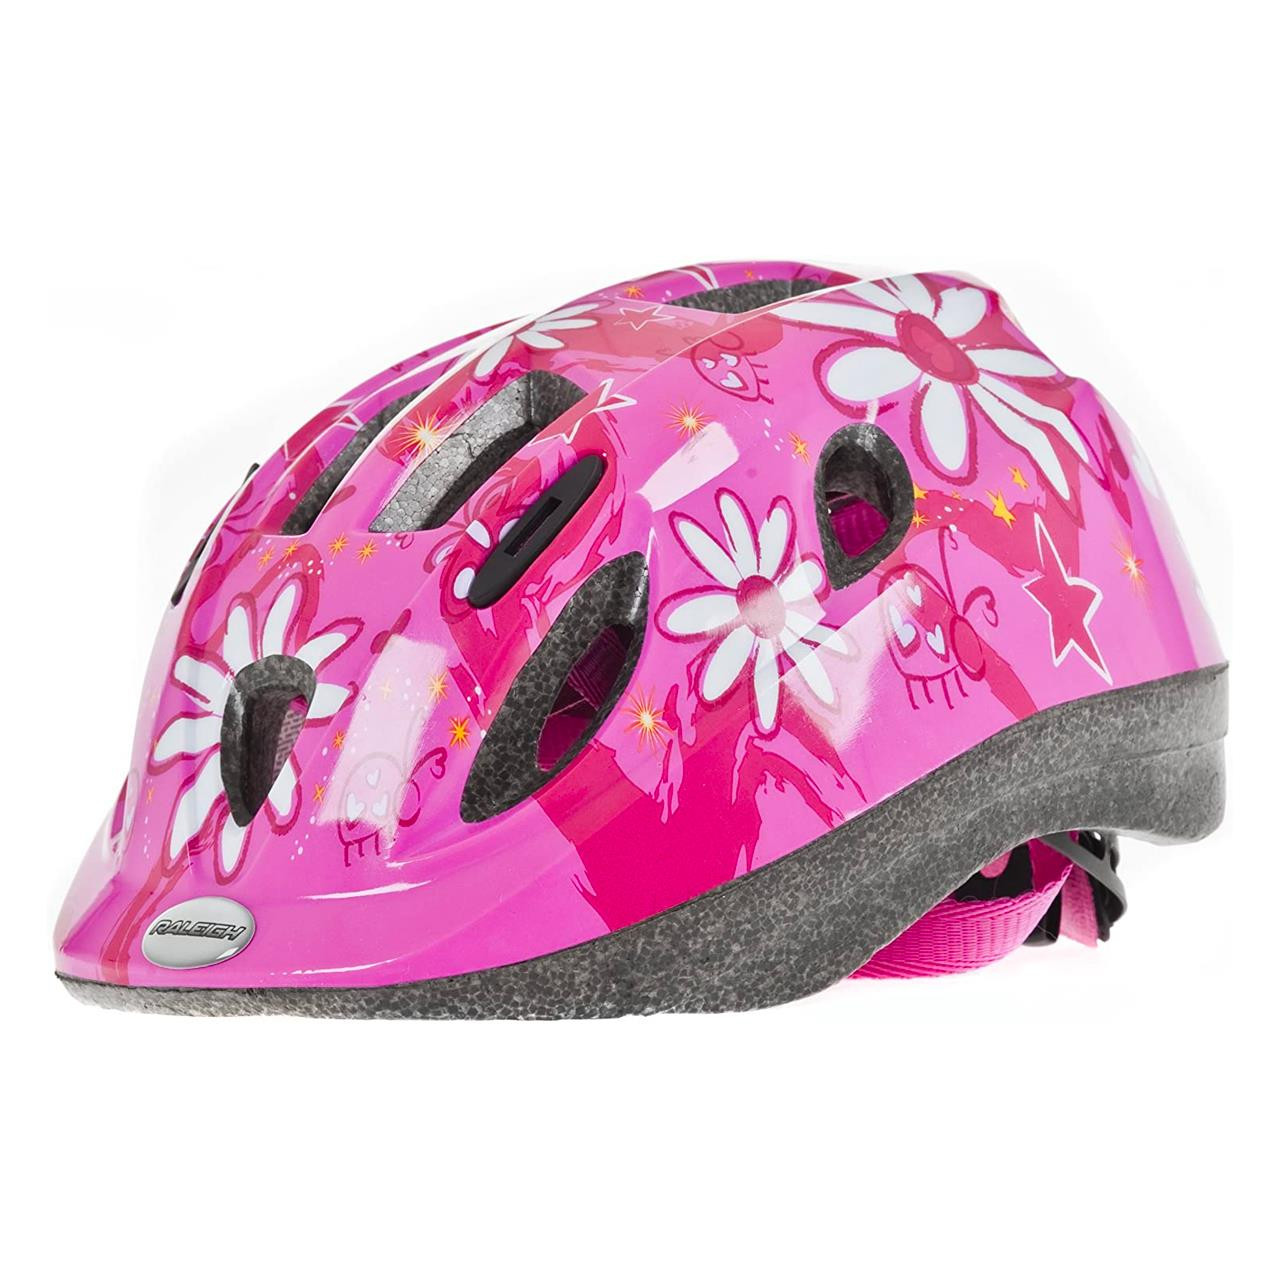 Raleigh Girl's Mystery Cycle Helmet (52-56 cm)